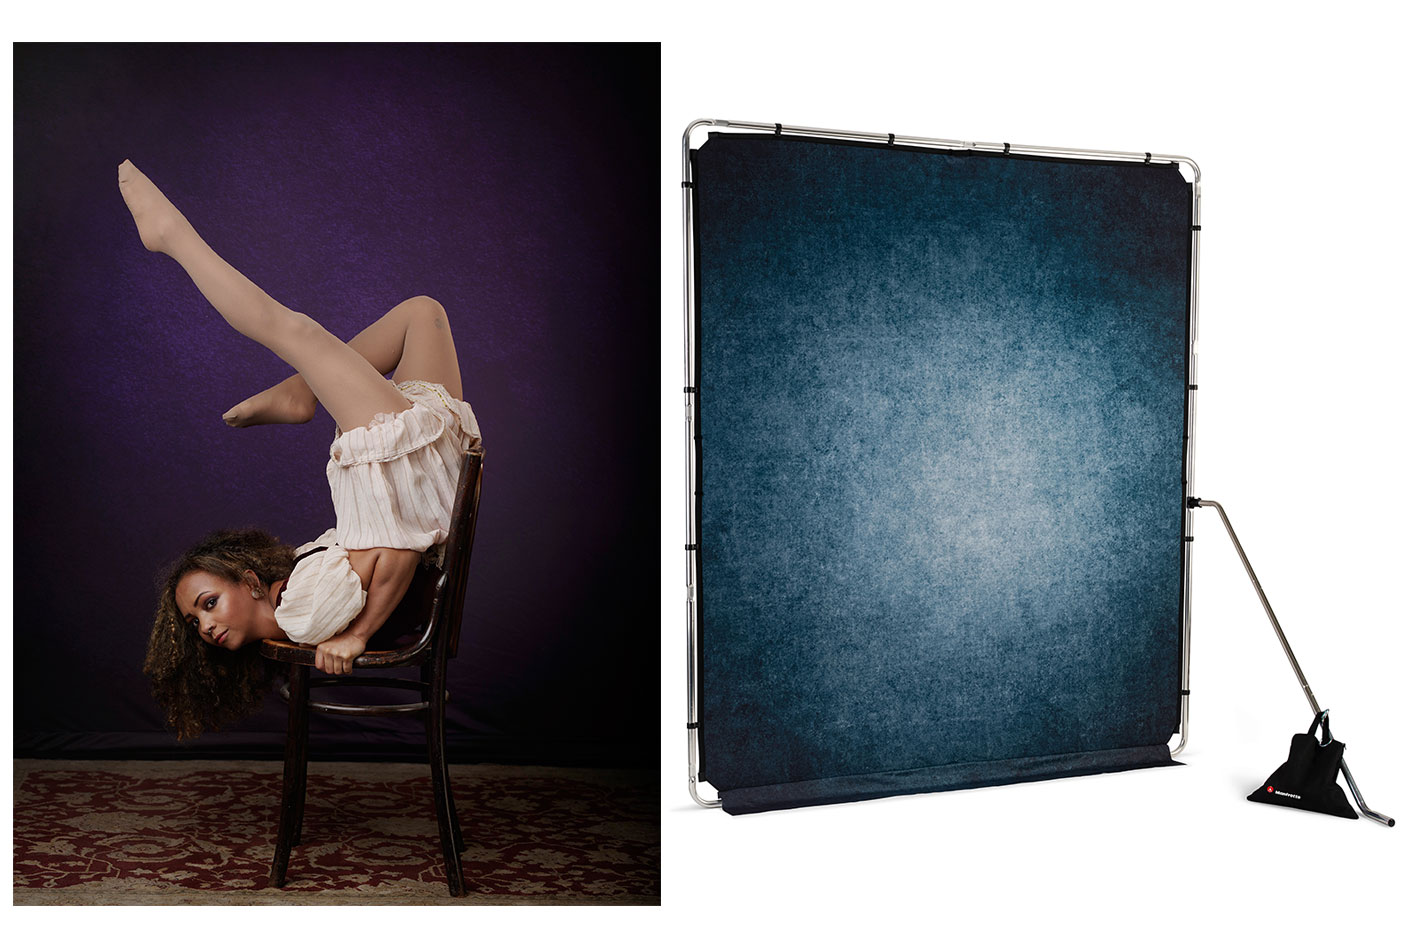 Six new EzyFrame backgrounds from Manfrotto